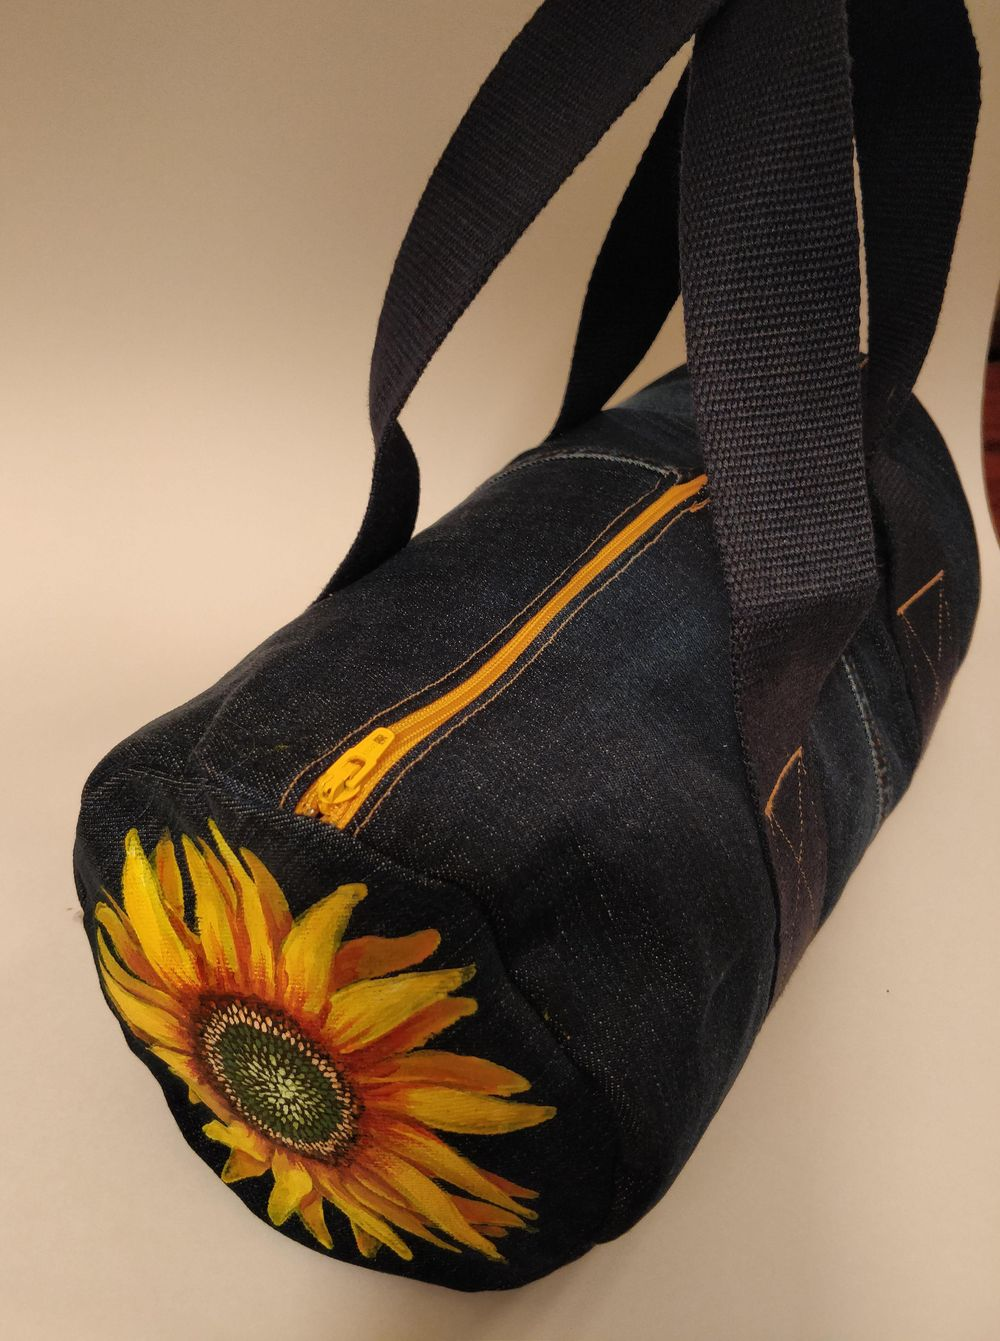 Sunflower on a Jean Bag - image 3 - student project